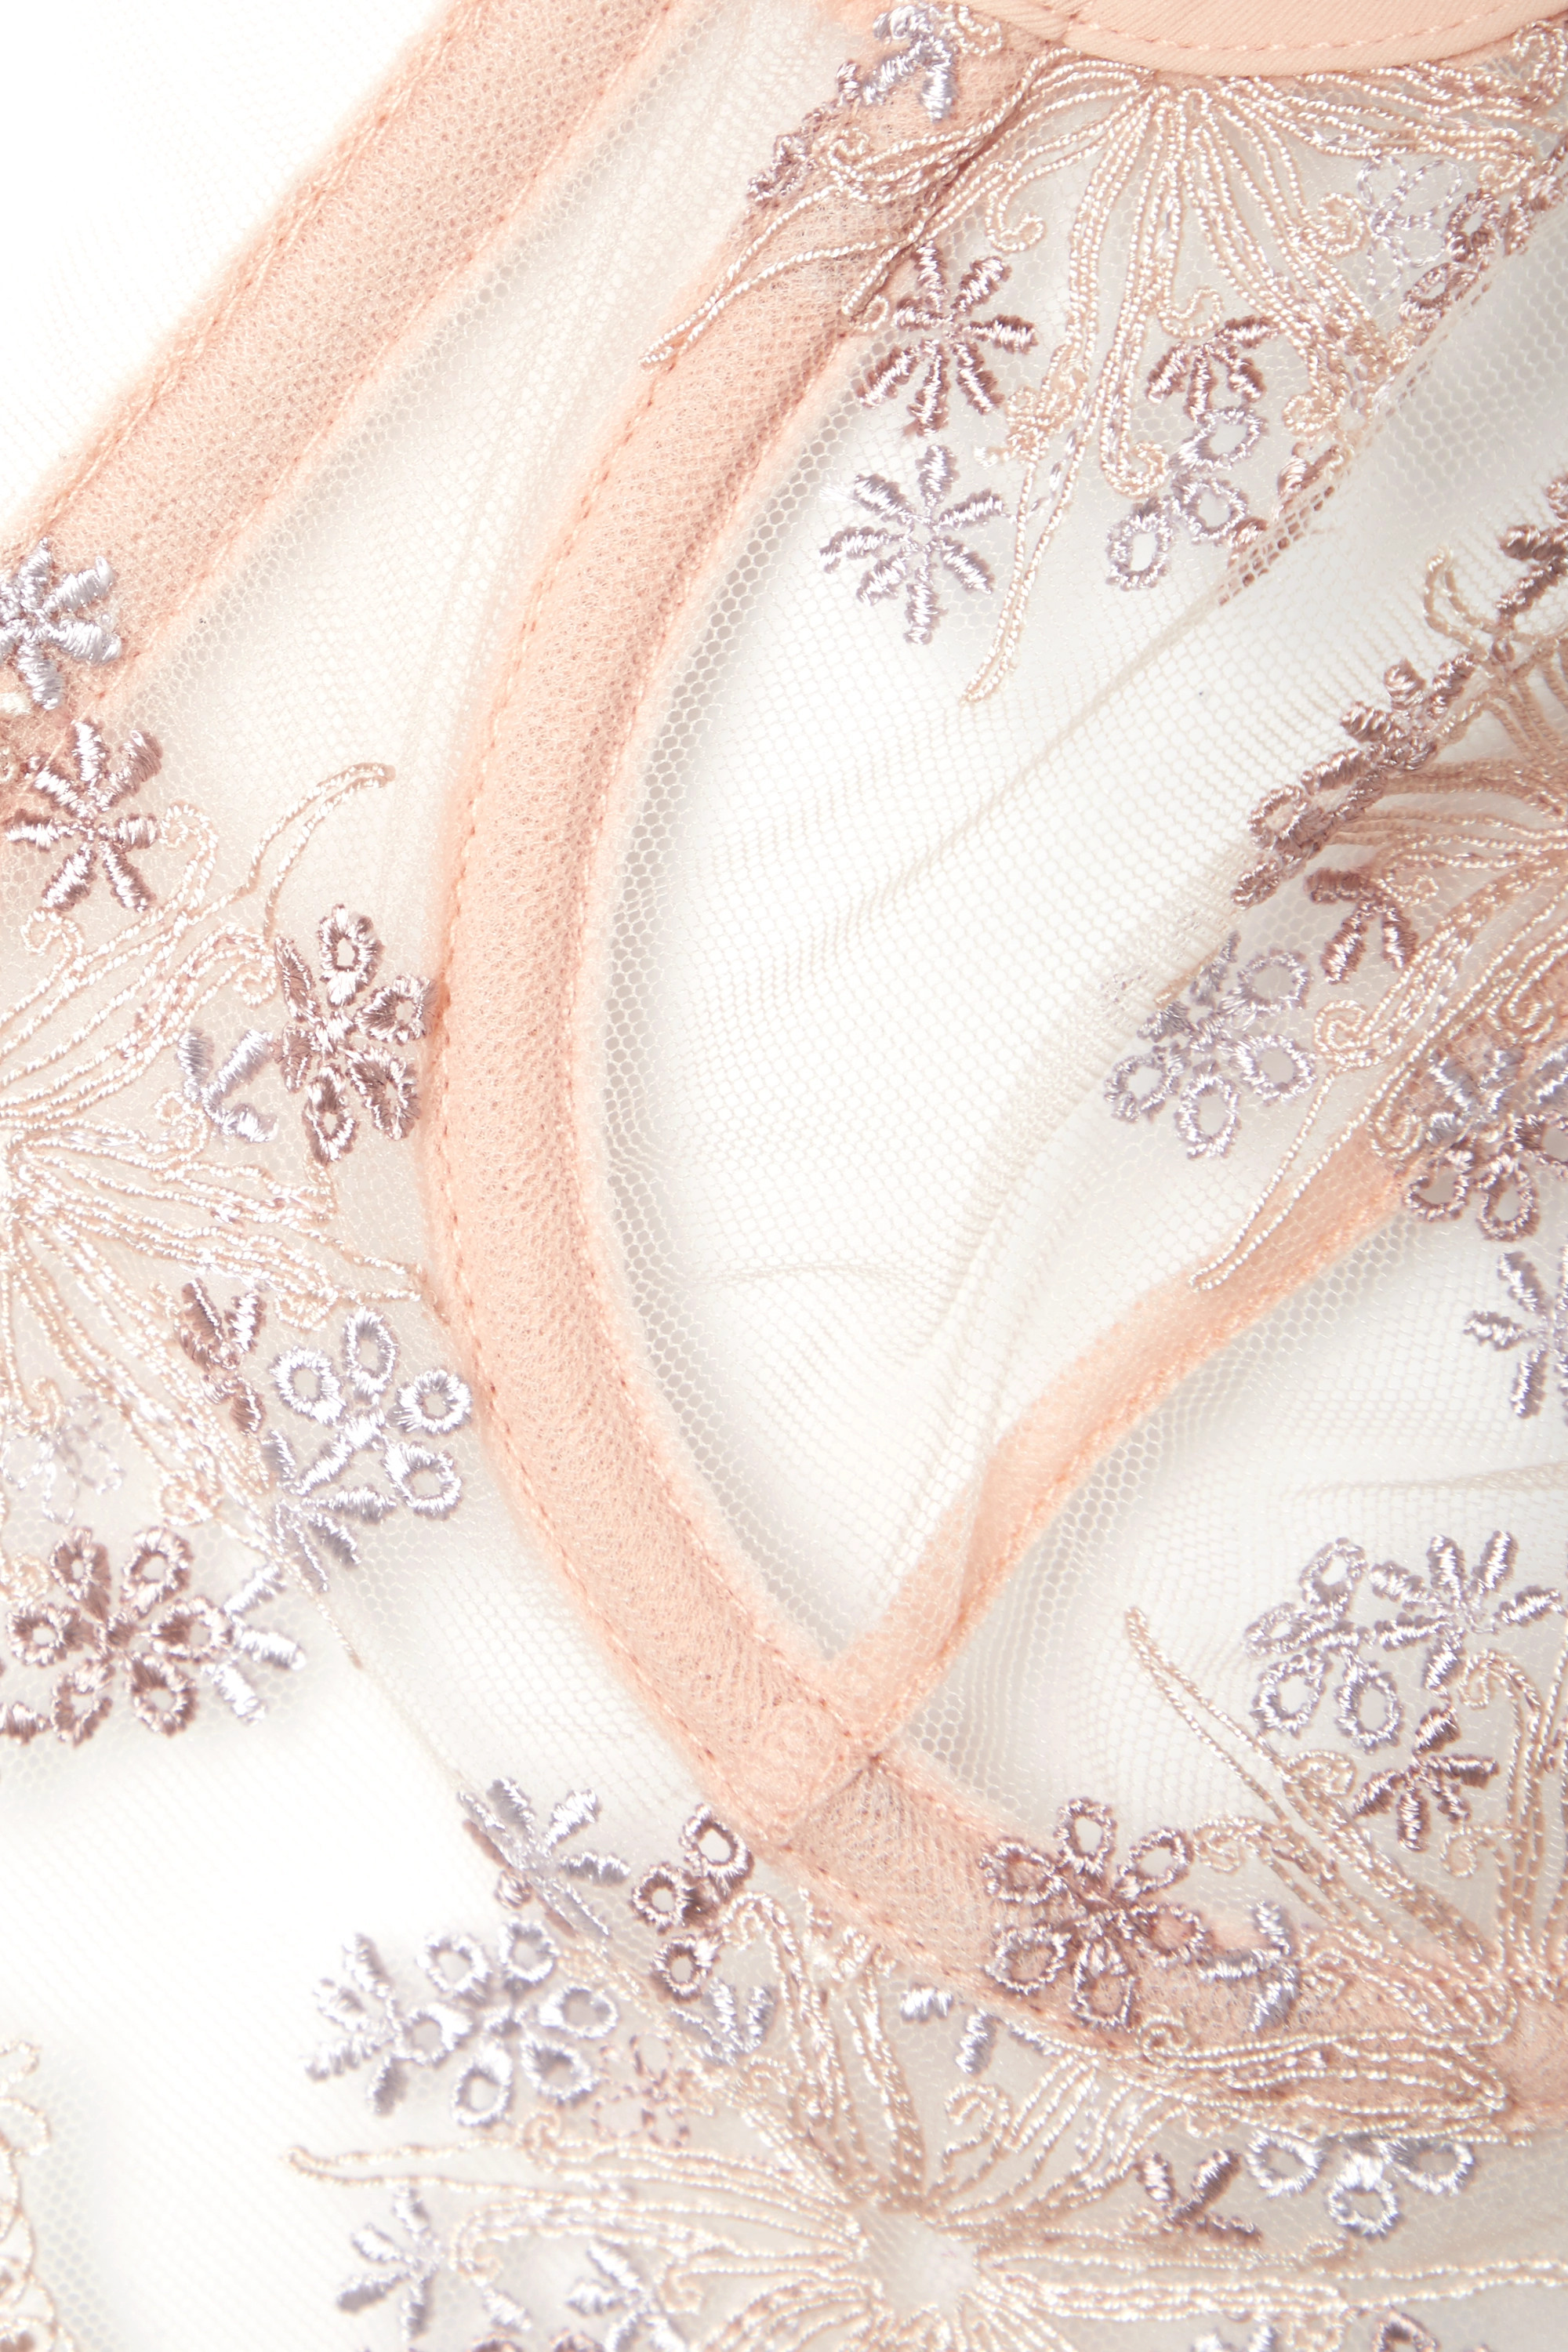 La Perla Flower Explosion embroidered stretch-tulle underwired soft-cup bra